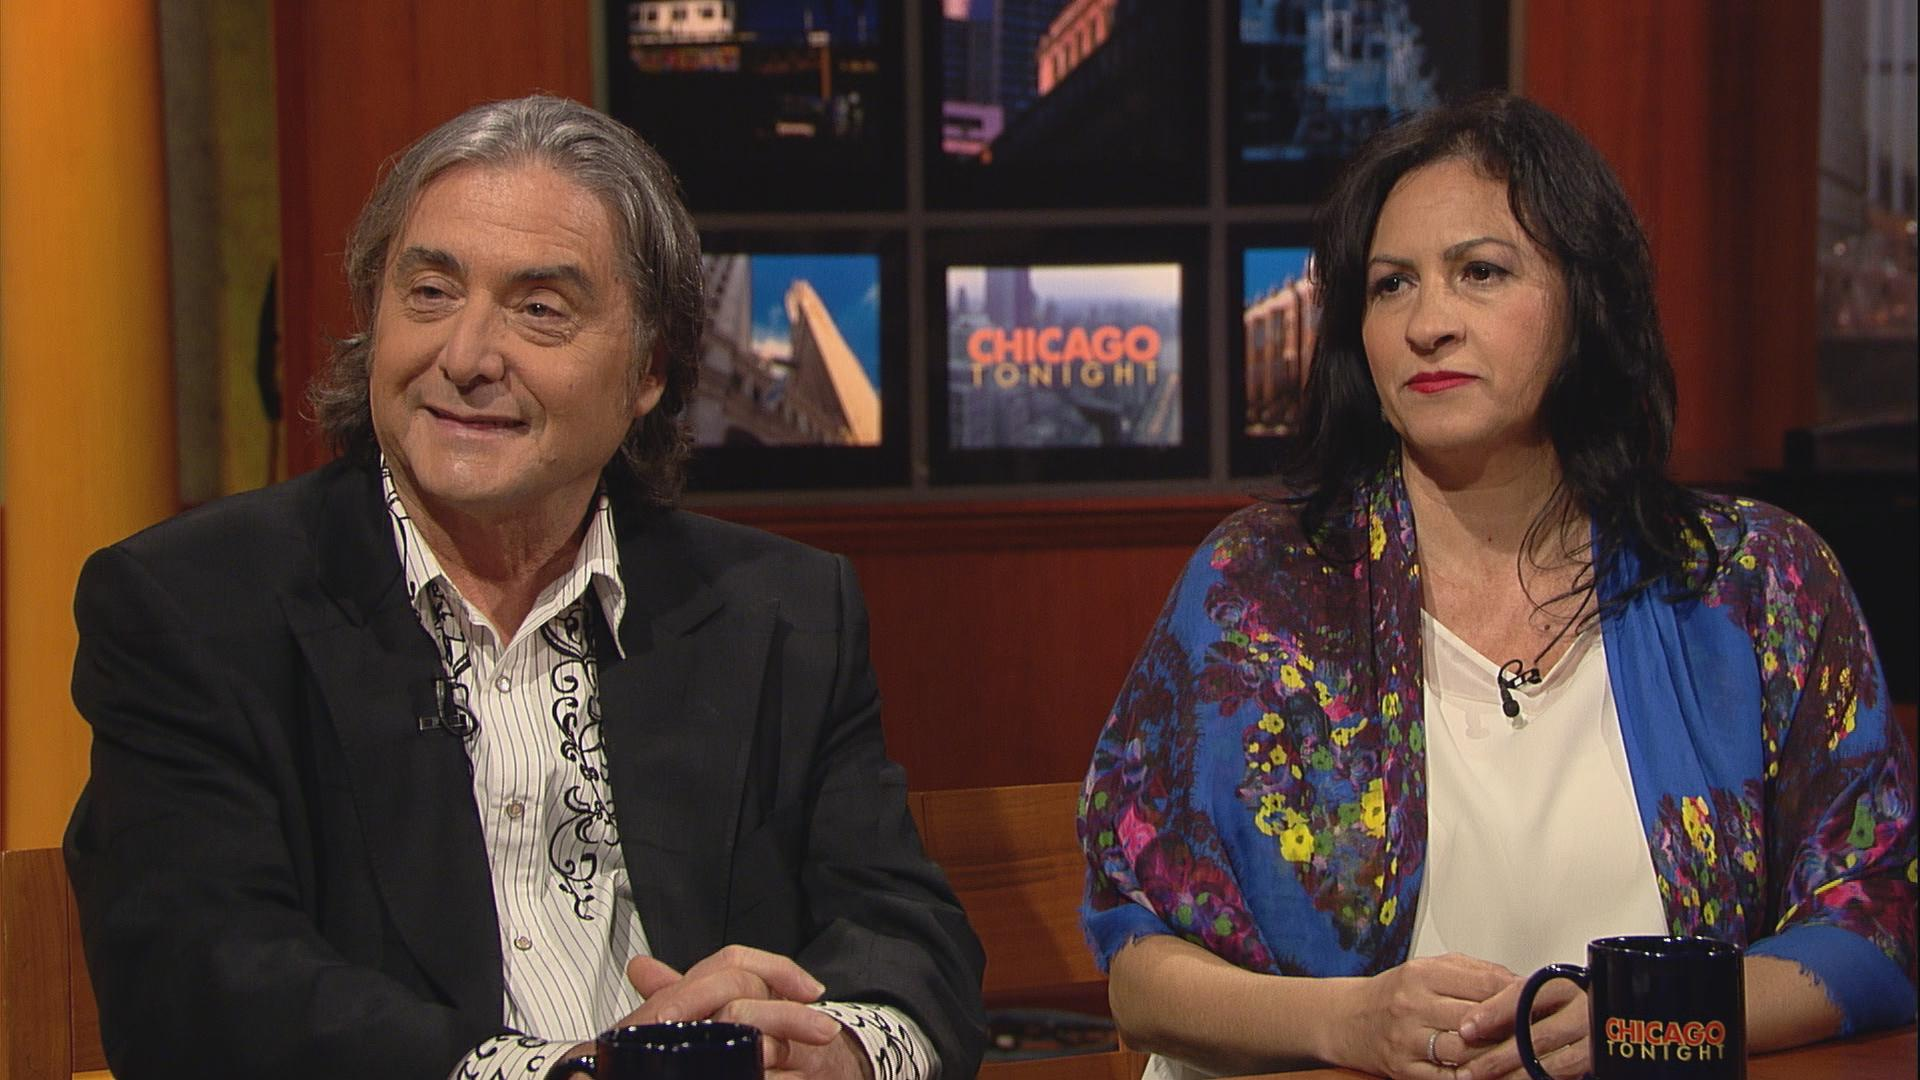 Composer Elbio Barilari, left, and guitarist Iliana Matos appear on Chicago Tonight in October to discuss the Chicago Latino Music Festival. Click on the image for the conversation and performance.